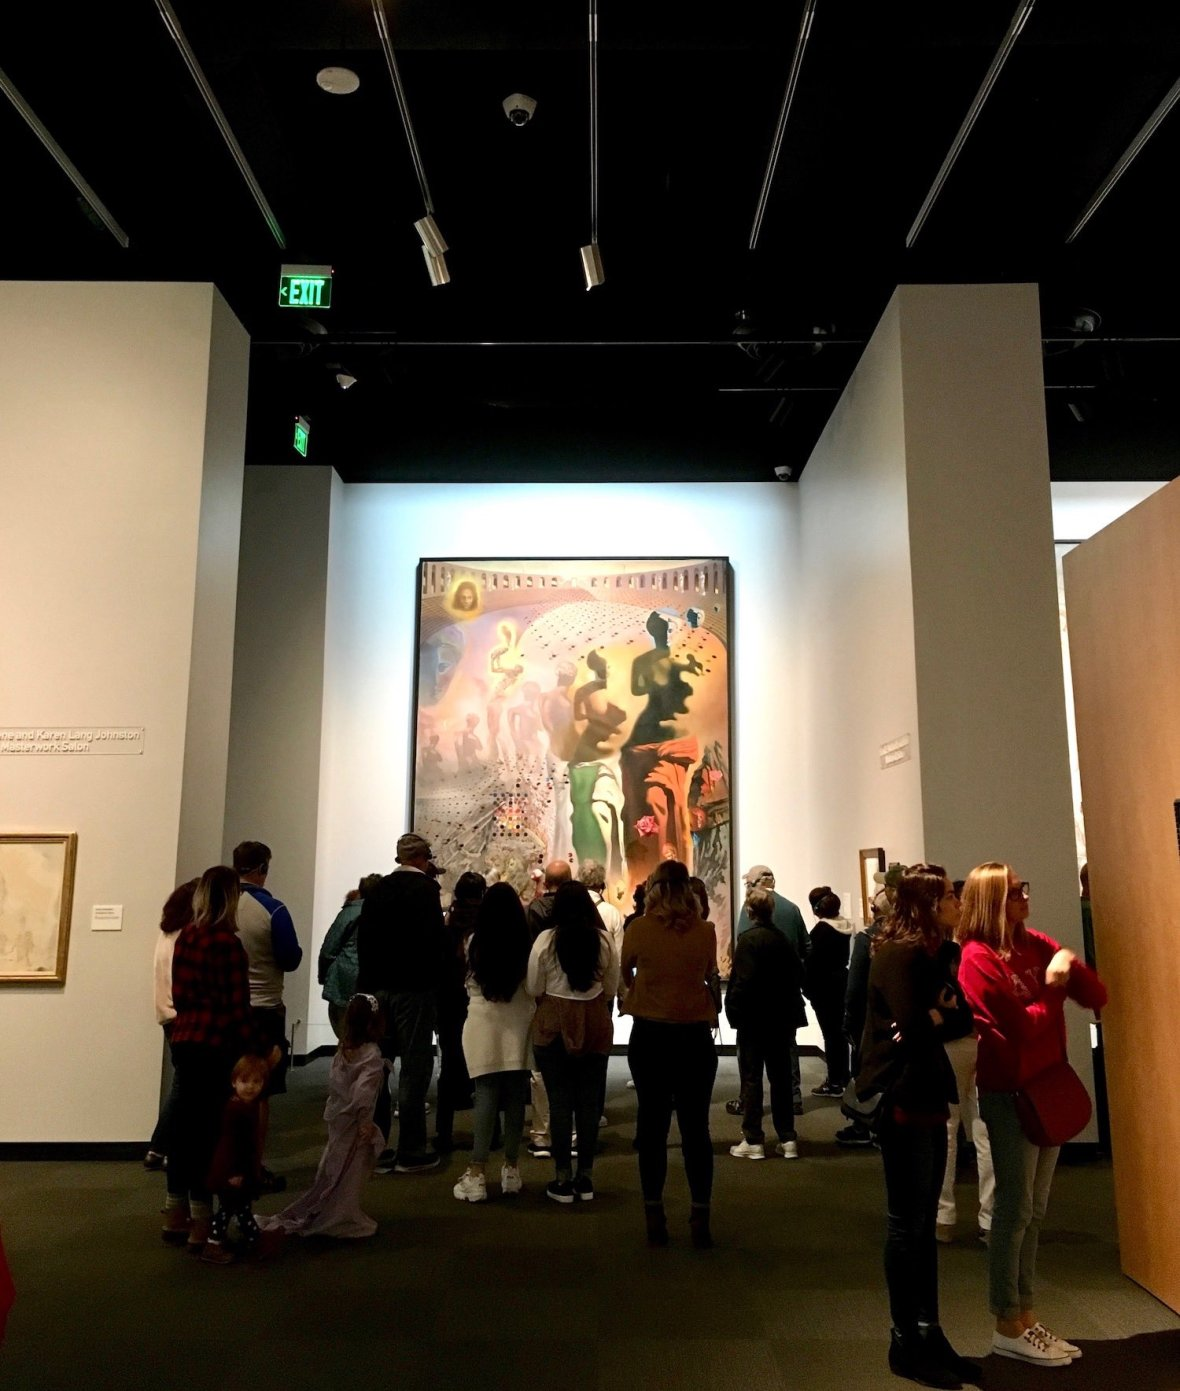 The Hallucinogenic Toreador painting at the Dali Museum in downtown St. Petersburg, Florida